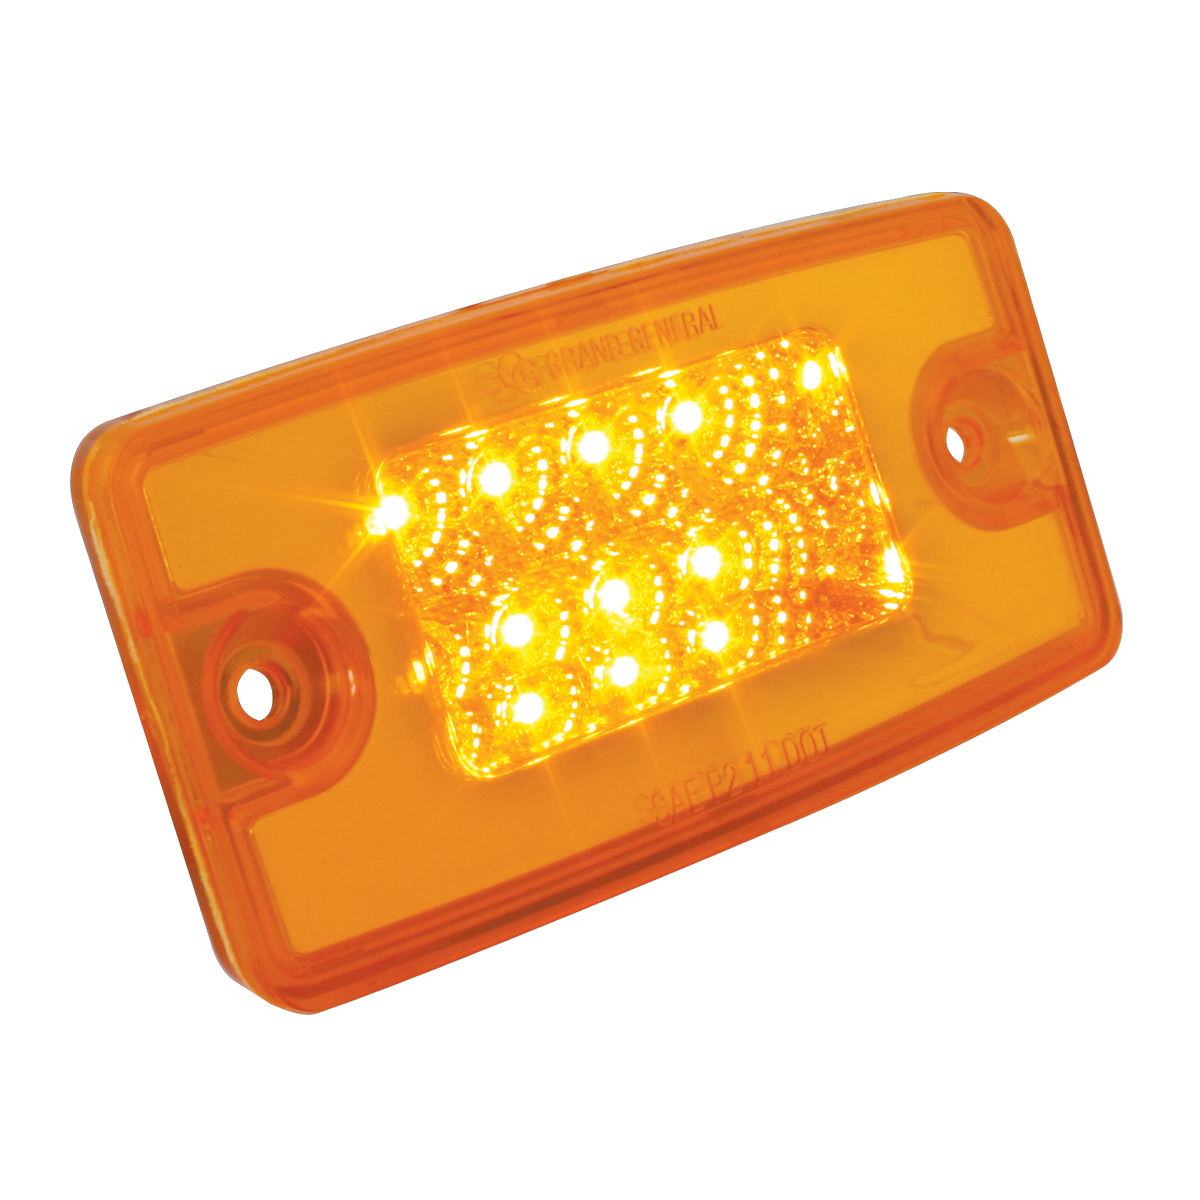 76320 Freightliner Rectangular Spyder LED Cab Marker Light